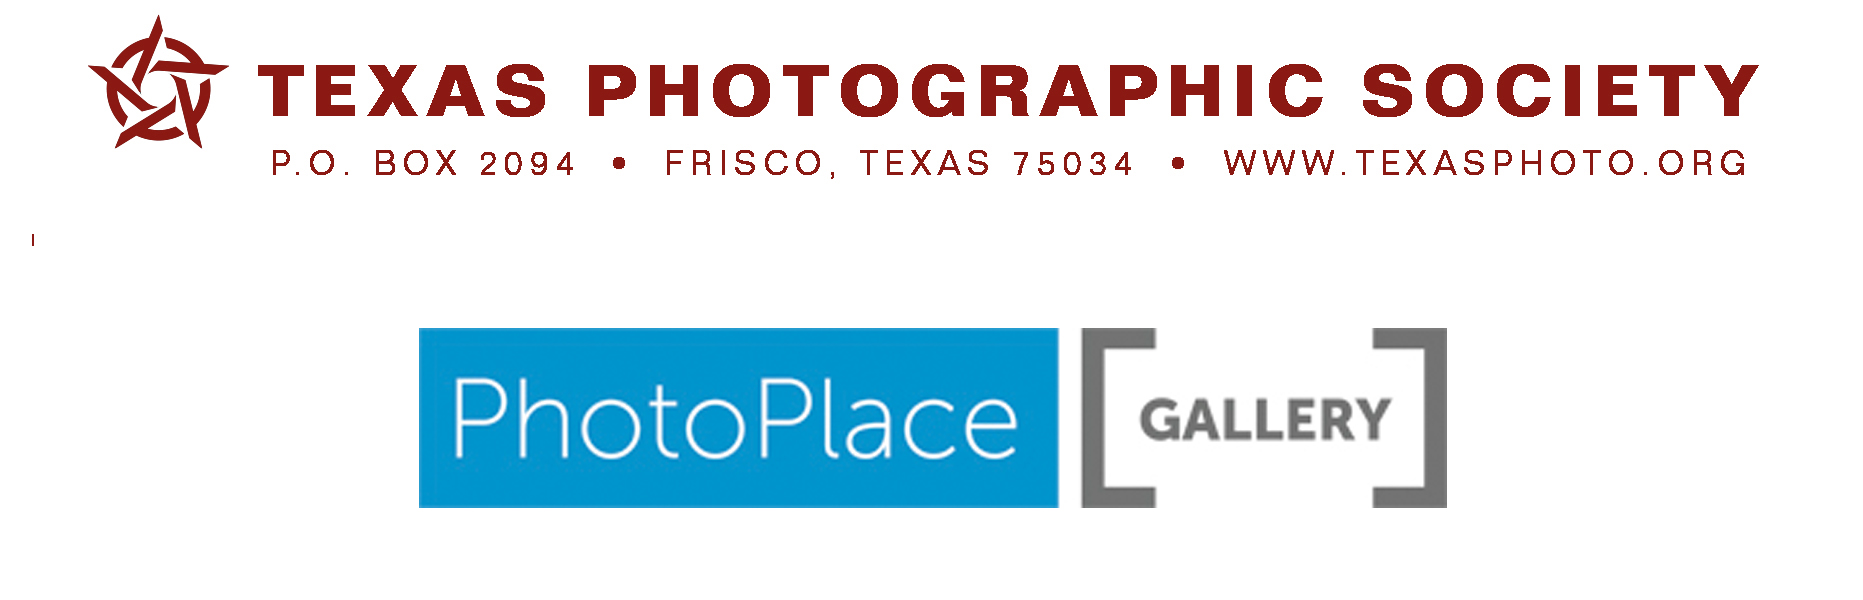 Texas Photographic Society sets a deadline for entries to Composed, juried by Sam Abell - logo